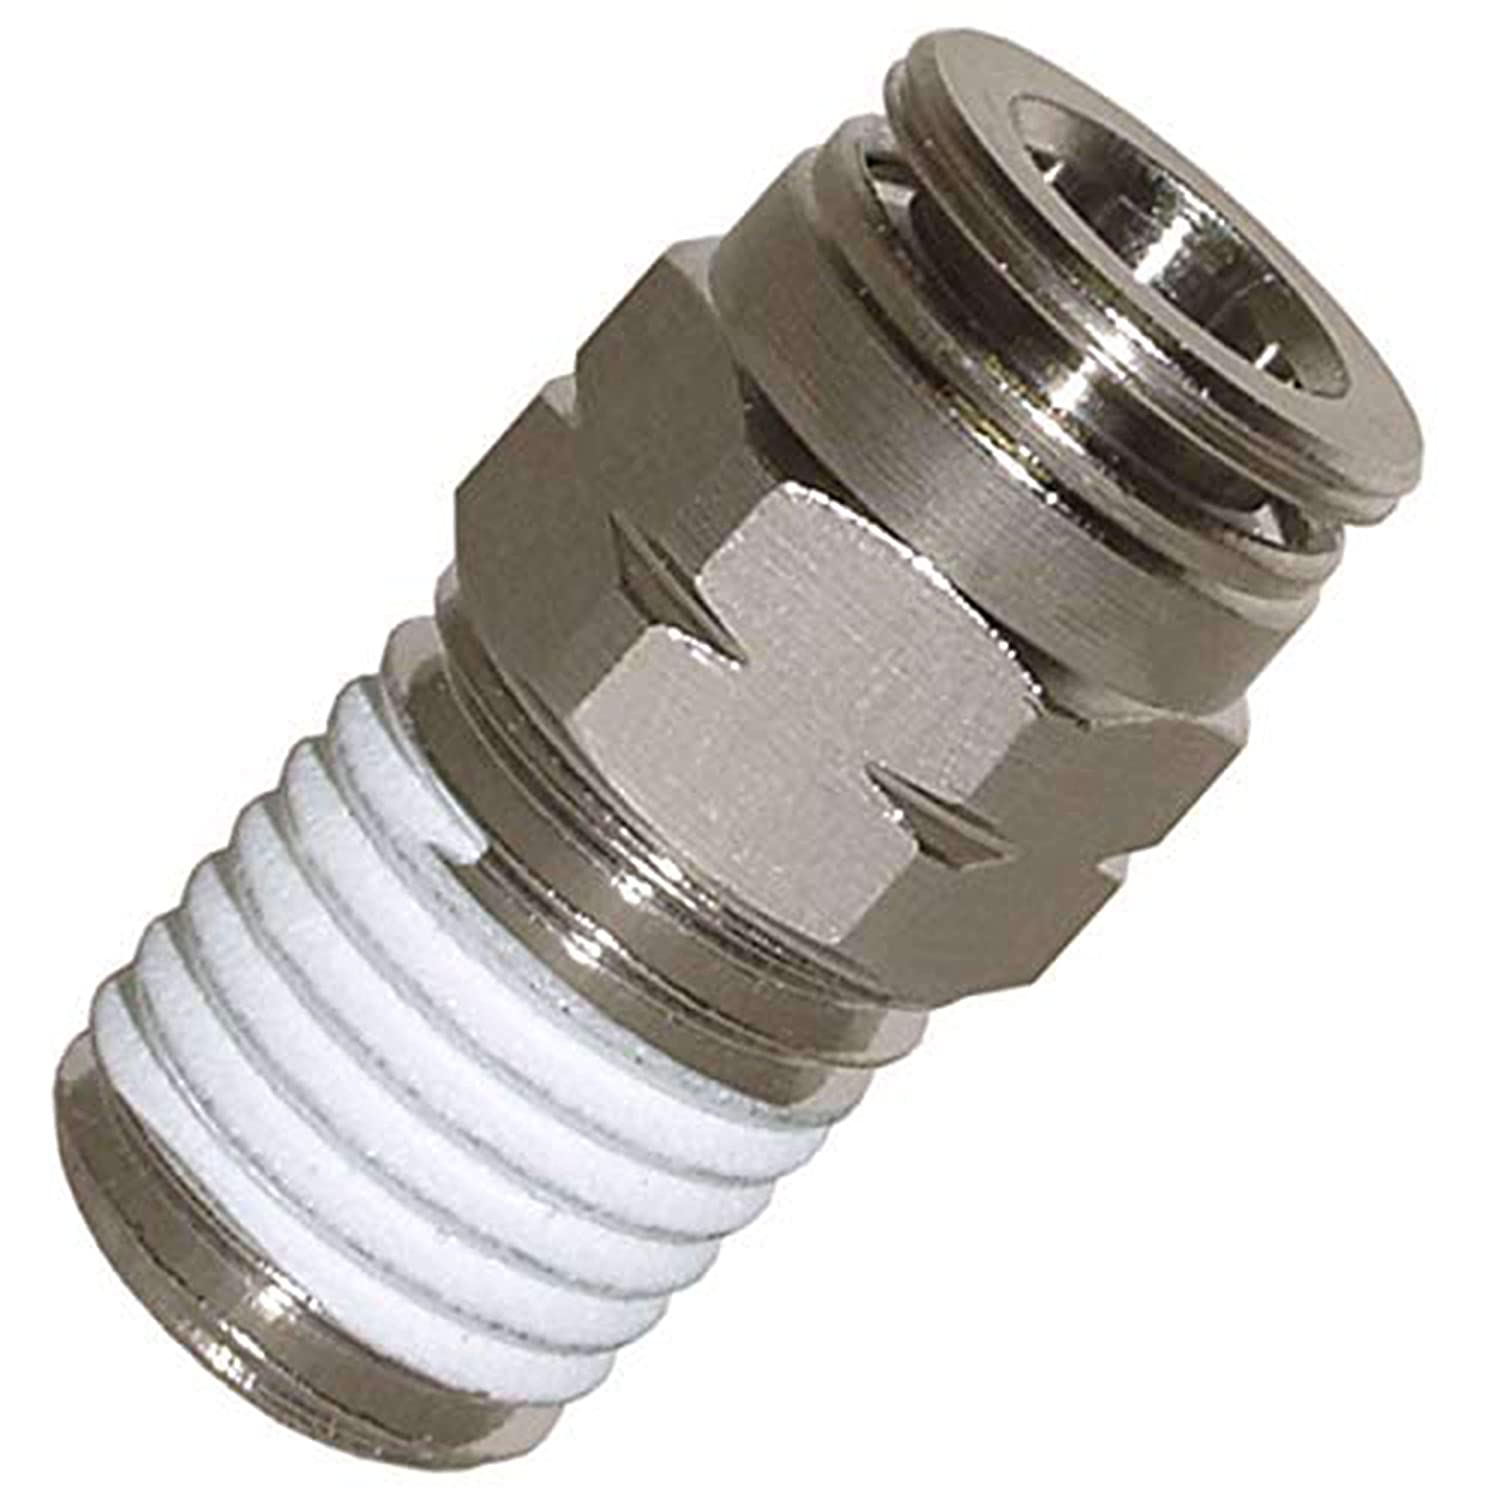 1//4 Tube OD x 1//8 NPT Male USA Sealing Push to Connect Tube Fitting Right Angle Tee Adapter Nylon Plastic